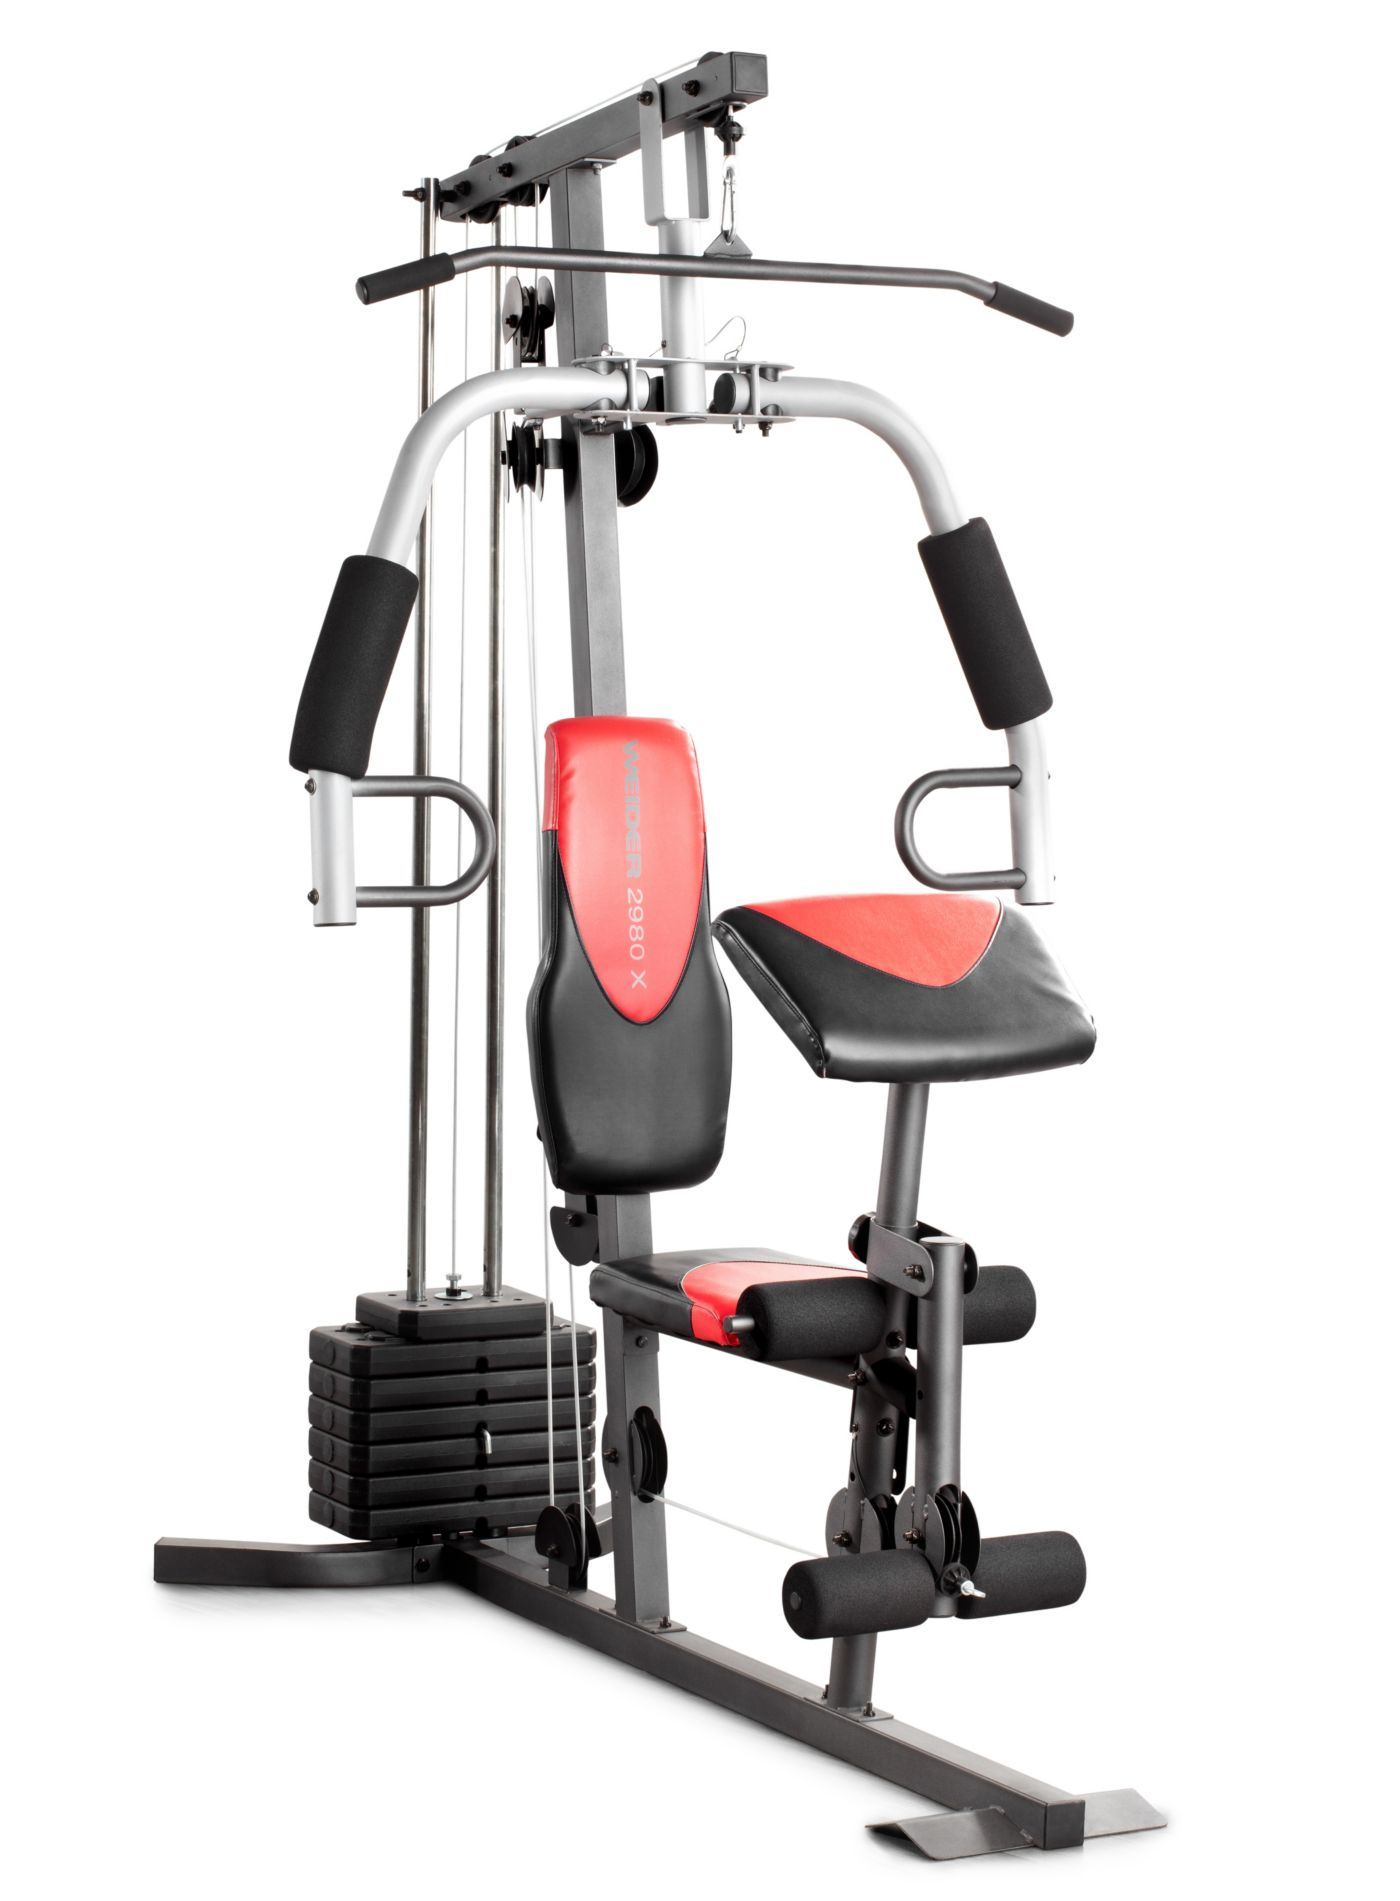 Weider 2980 X Home Gym System